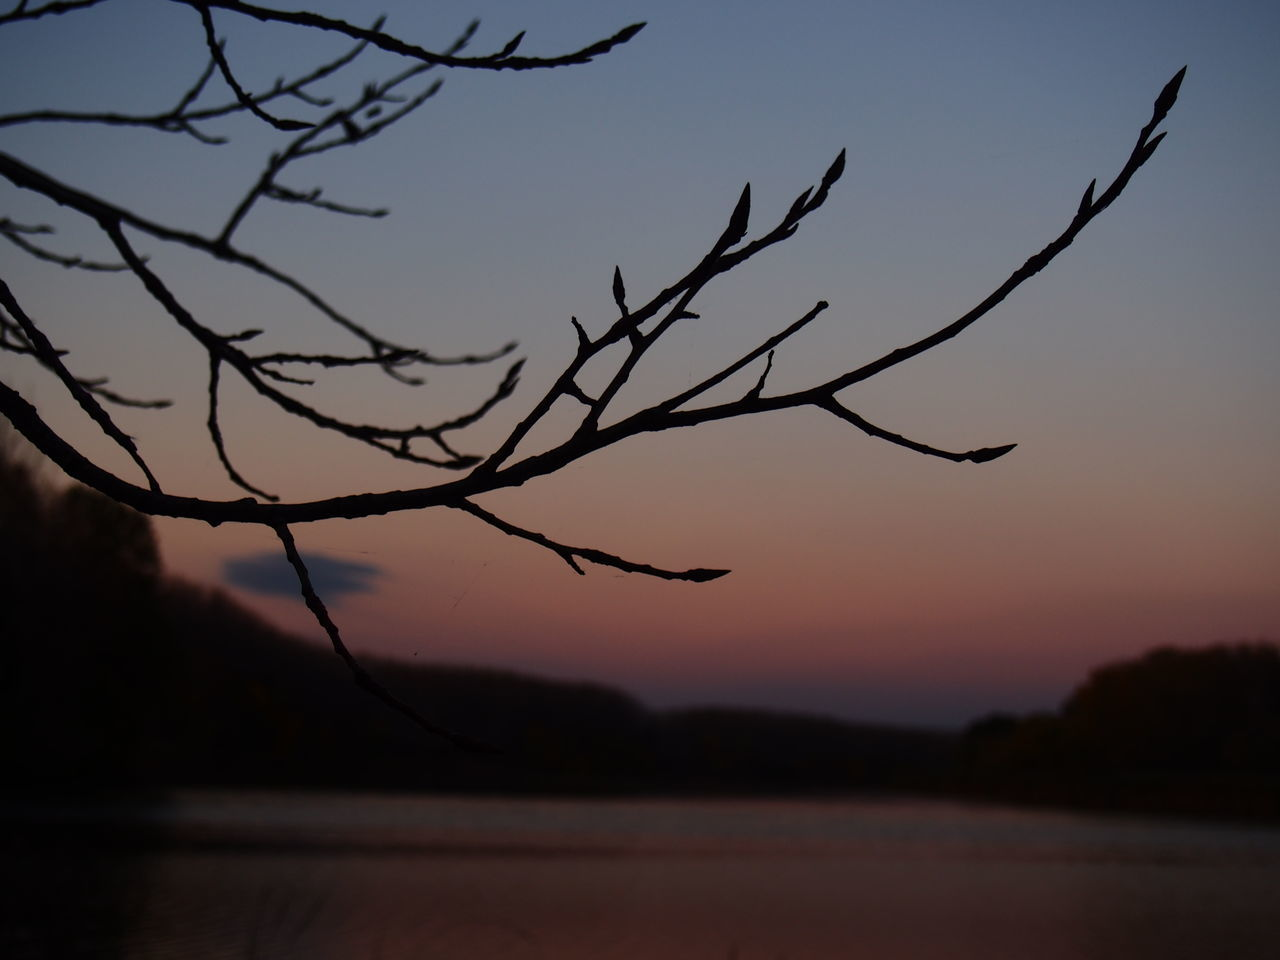 sunset, silhouette, nature, beauty in nature, sky, tree, tranquility, scenics, outdoors, tranquil scene, no people, branch, moon, bird, day